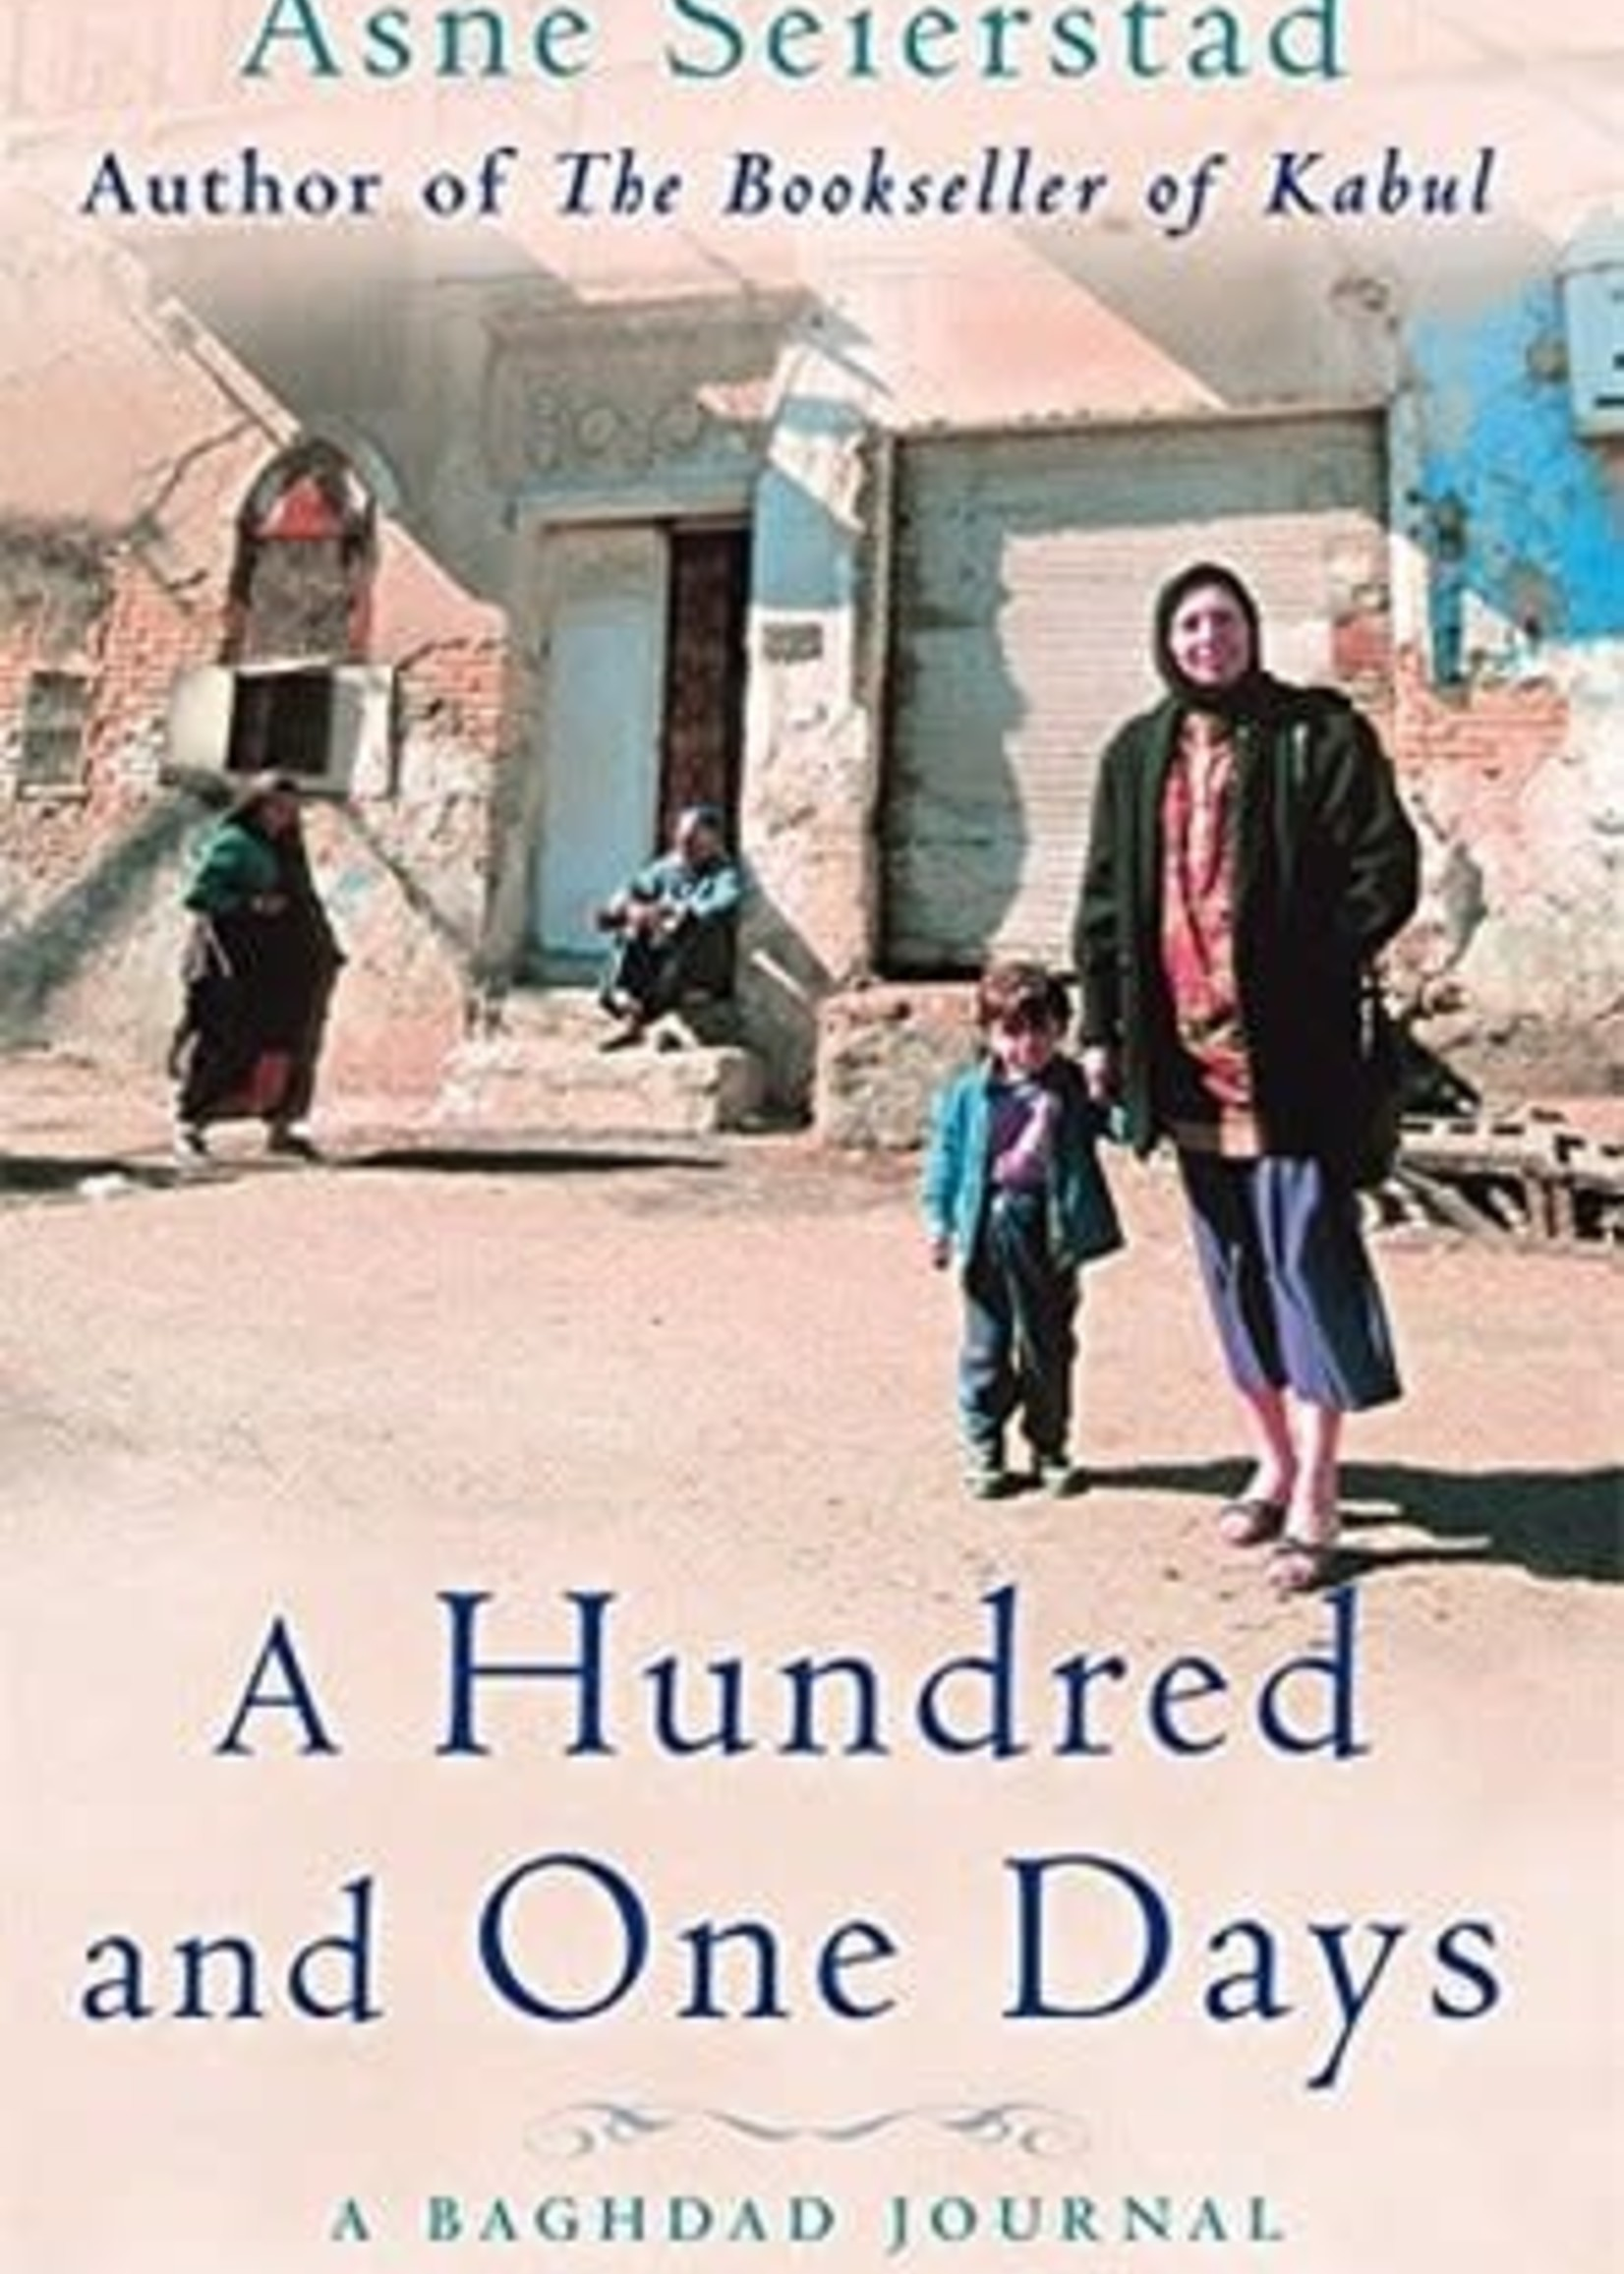 USED - A Hundred And One Days by Åsne Seierstad